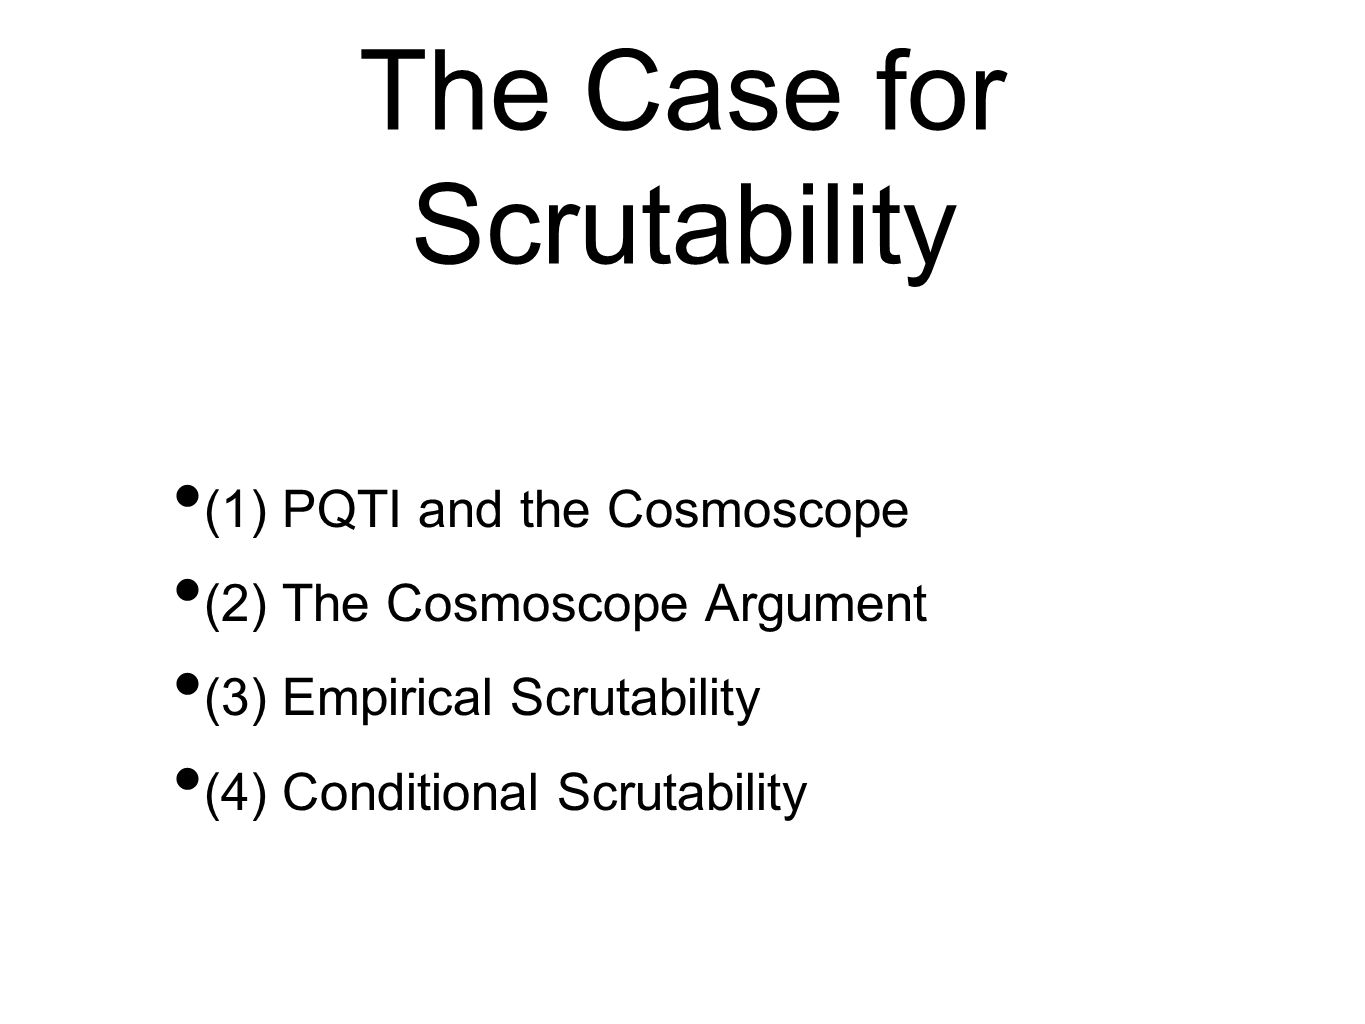 The Case for Scrutability (1) PQTI and the Cosmoscope (2) The Cosmoscope Argument (3) Empirical Scrutability (4) Conditional Scrutability